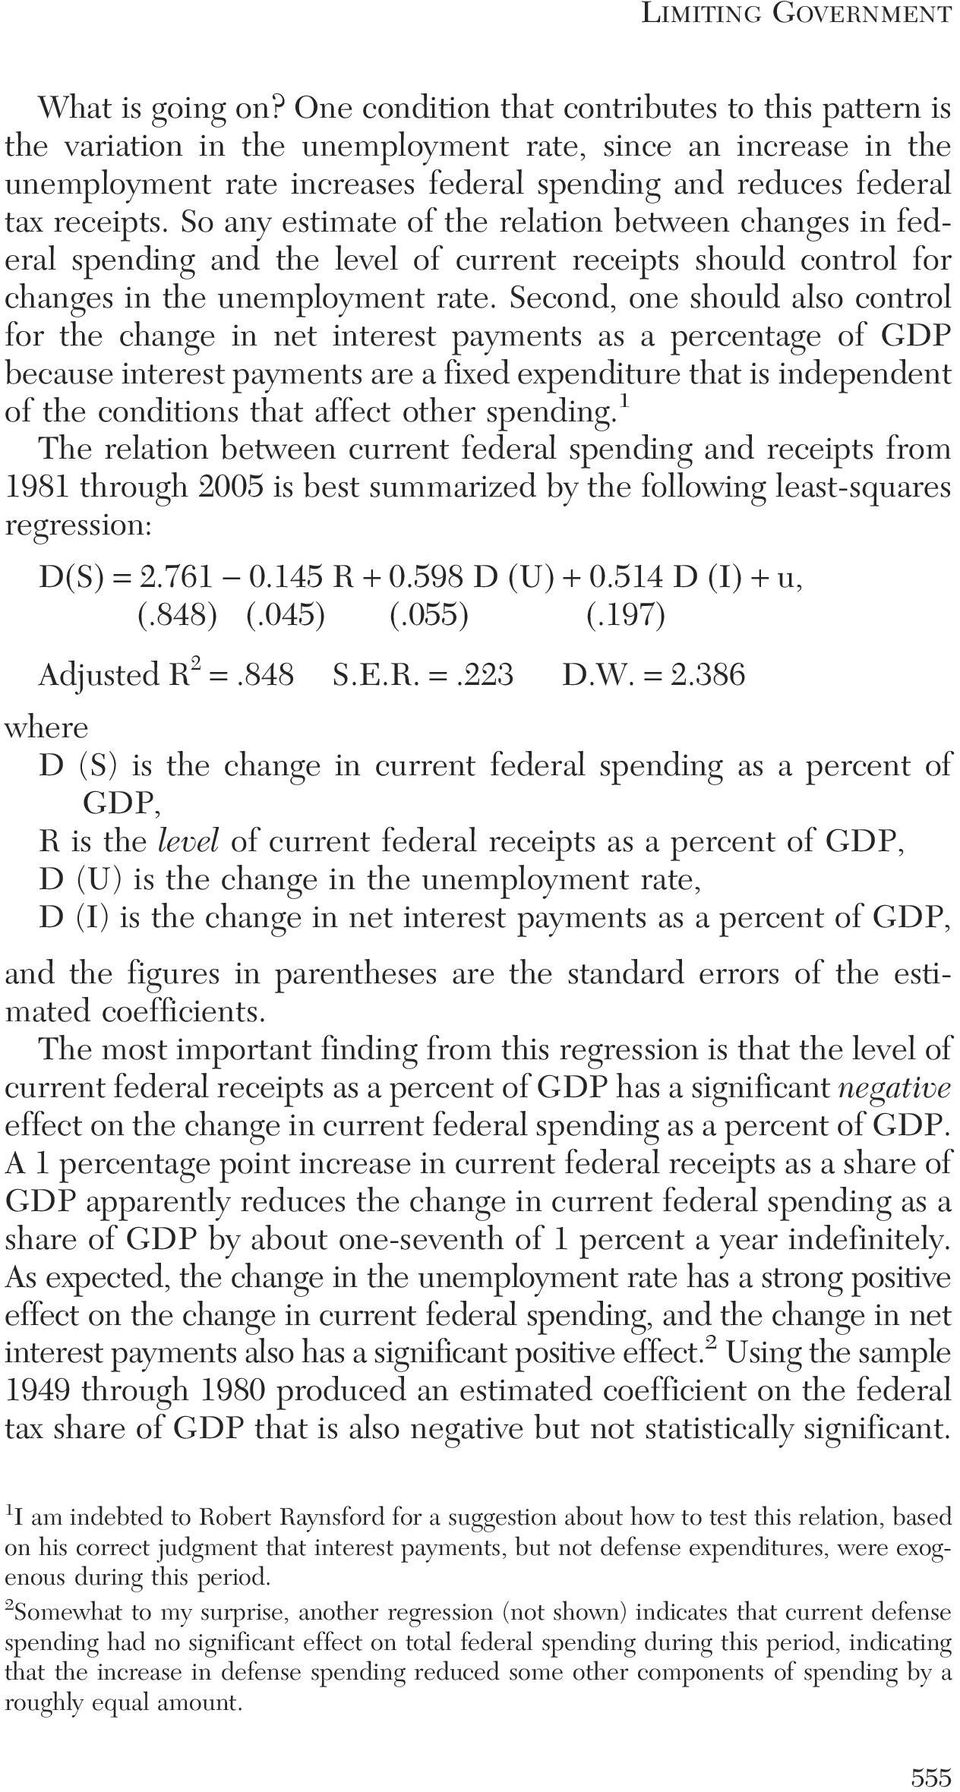 So any estimate of the relation between changes in federal spending and the level of current receipts should control for changes in the unemployment rate.